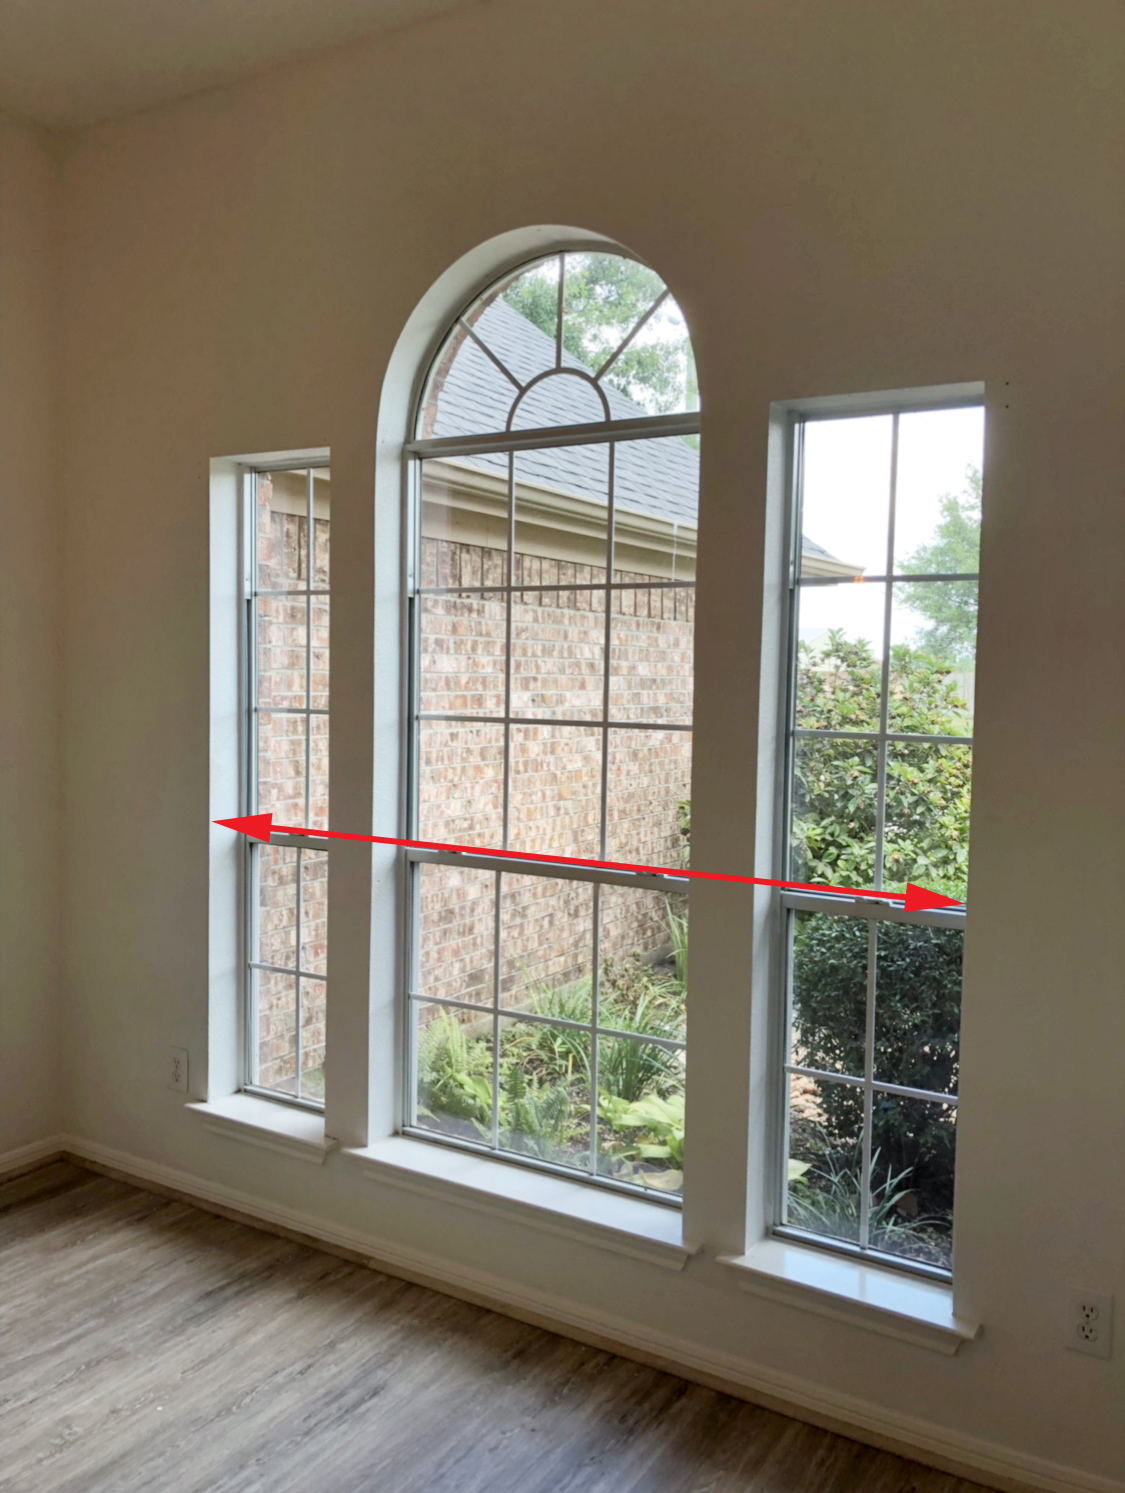 Adding Trim to a Window and Hiding a Half Circle